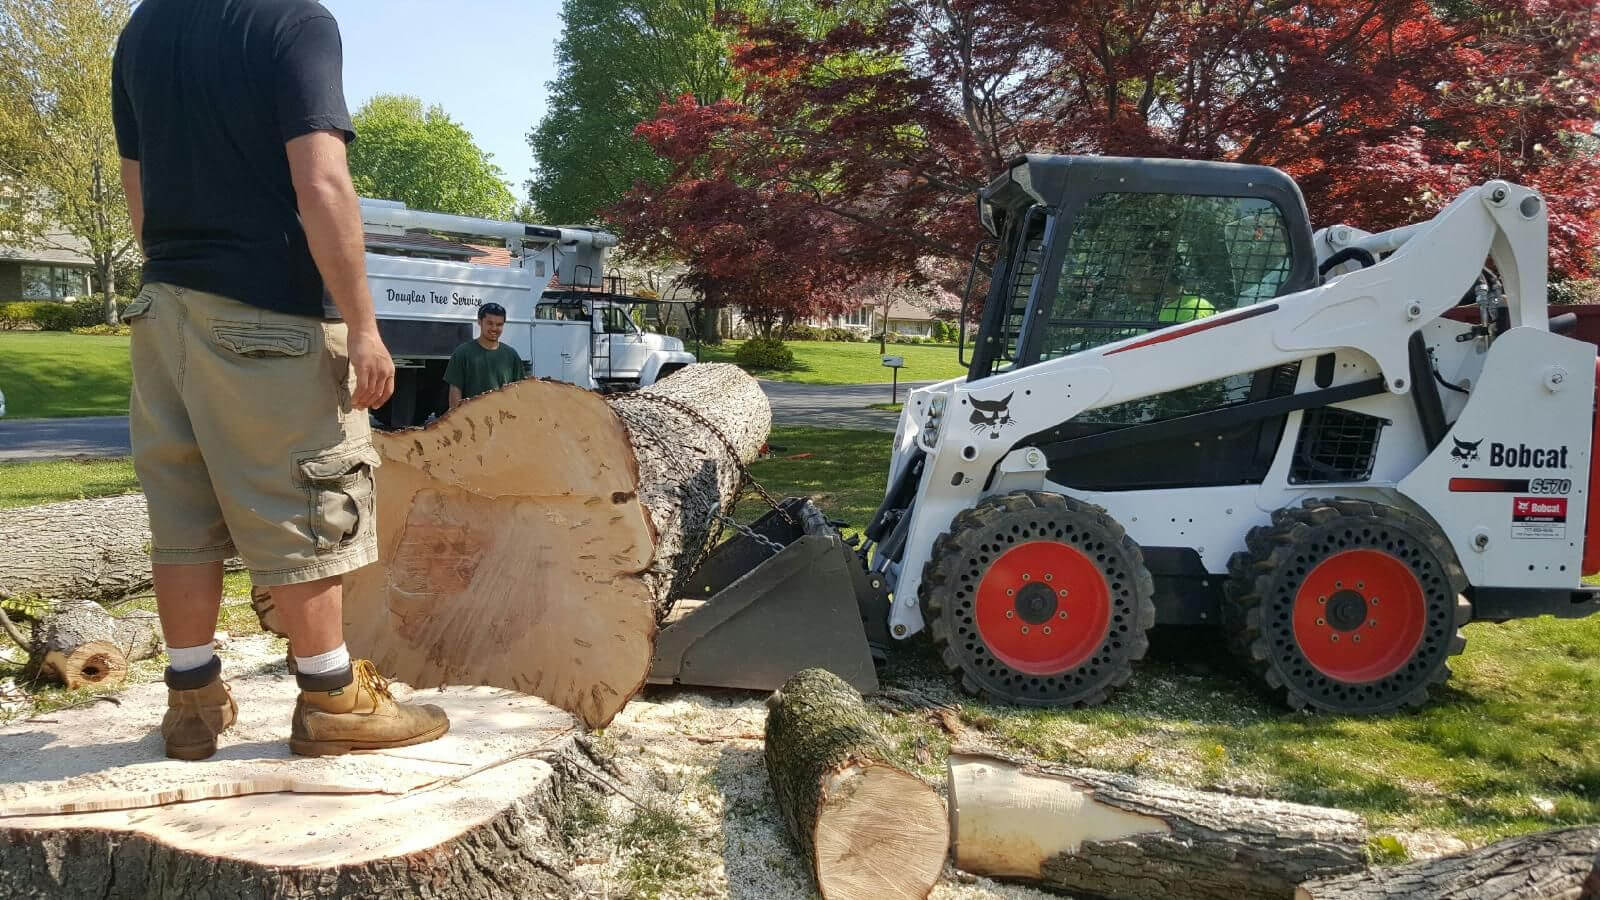 Services-Fort Lauderdale FL Tree Trimming and Stump Grinding Services-We Offer Tree Trimming Services, Tree Removal, Tree Pruning, Tree Cutting, Residential and Commercial Tree Trimming Services, Storm Damage, Emergency Tree Removal, Land Clearing, Tree Companies, Tree Care Service, Stump Grinding, and we're the Best Tree Trimming Company Near You Guaranteed!